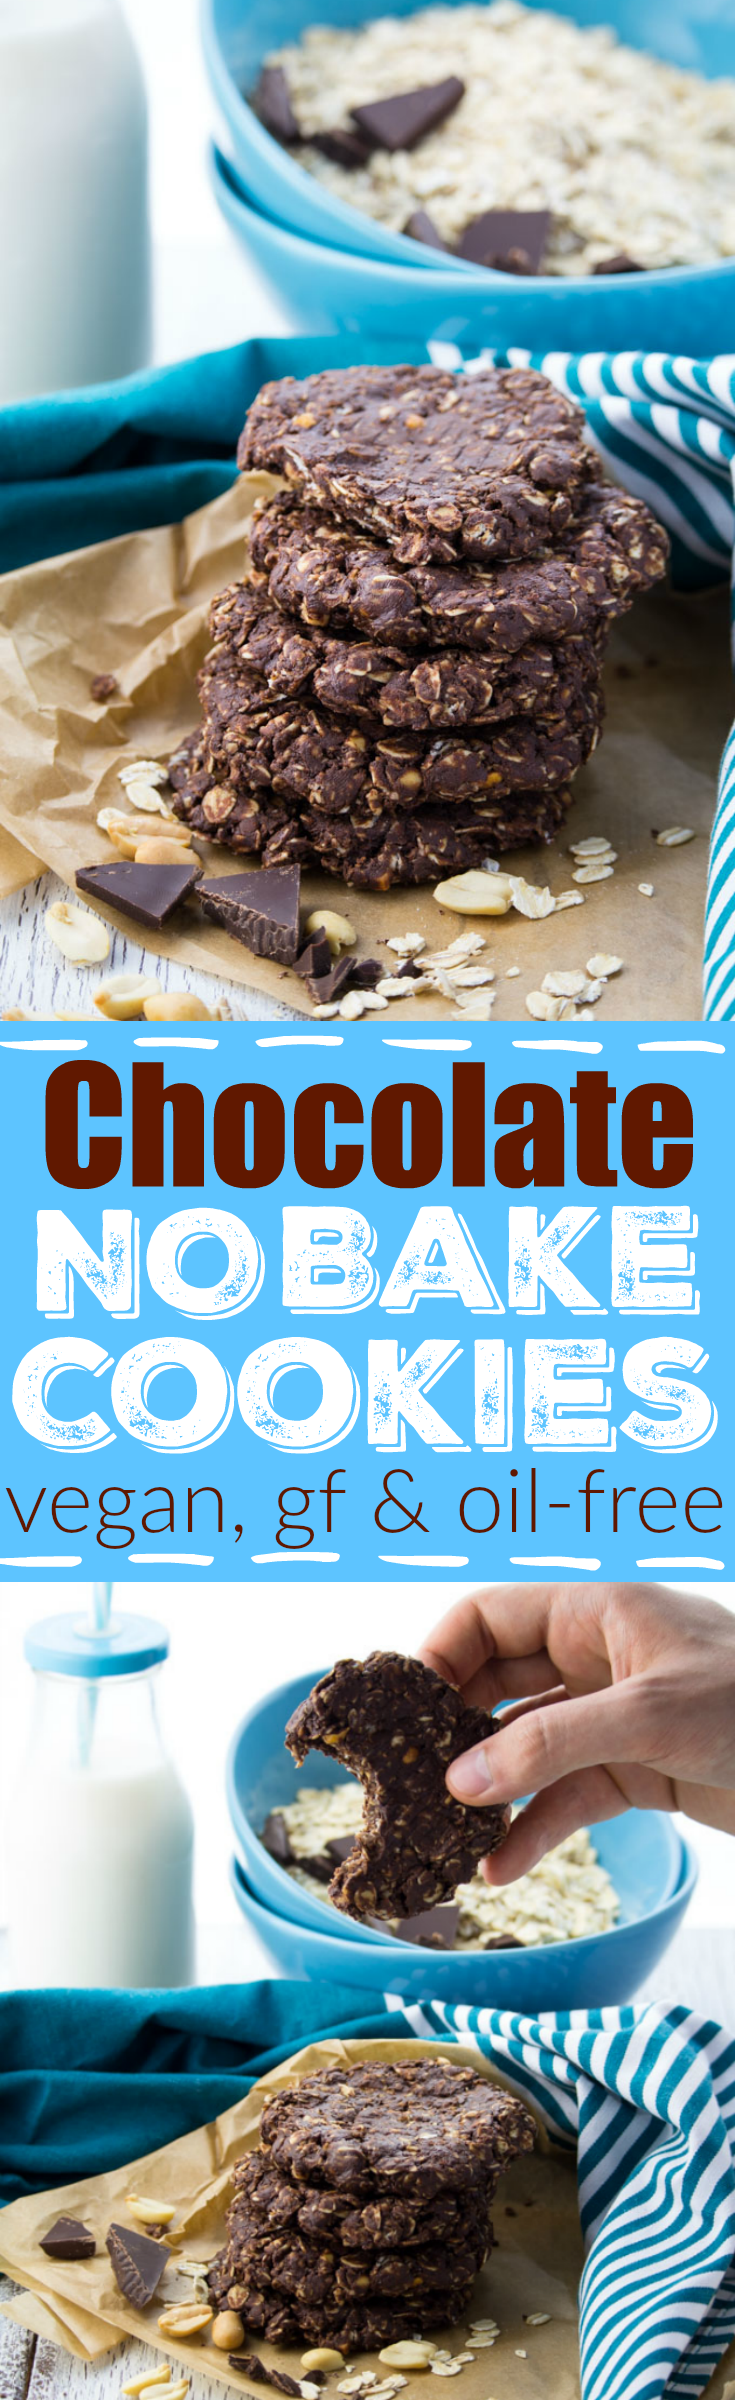 These chocolate peanut butter no bake cookies without milk are perfect when you feel like having a little treat and don't have enough time for real baking!